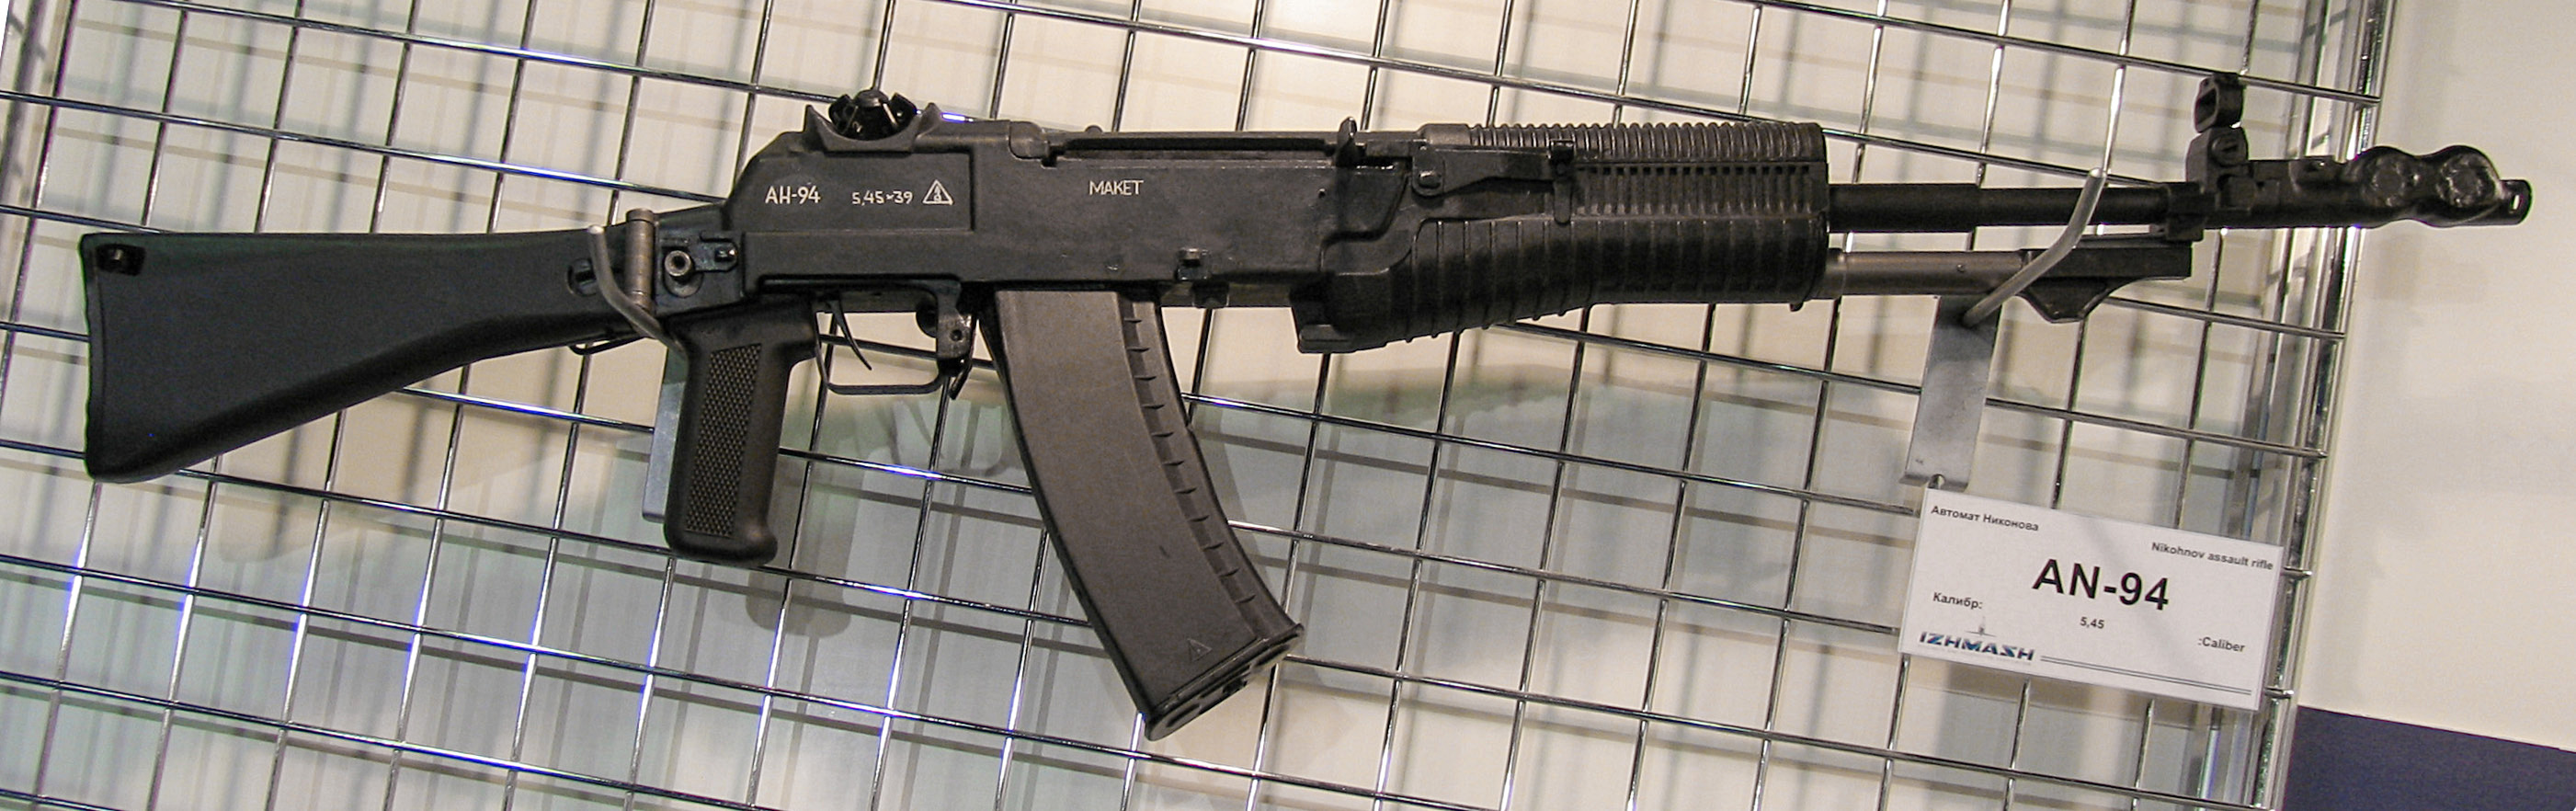 File:AN-94 assault rifle at Engineering Technologies 2012.jpg